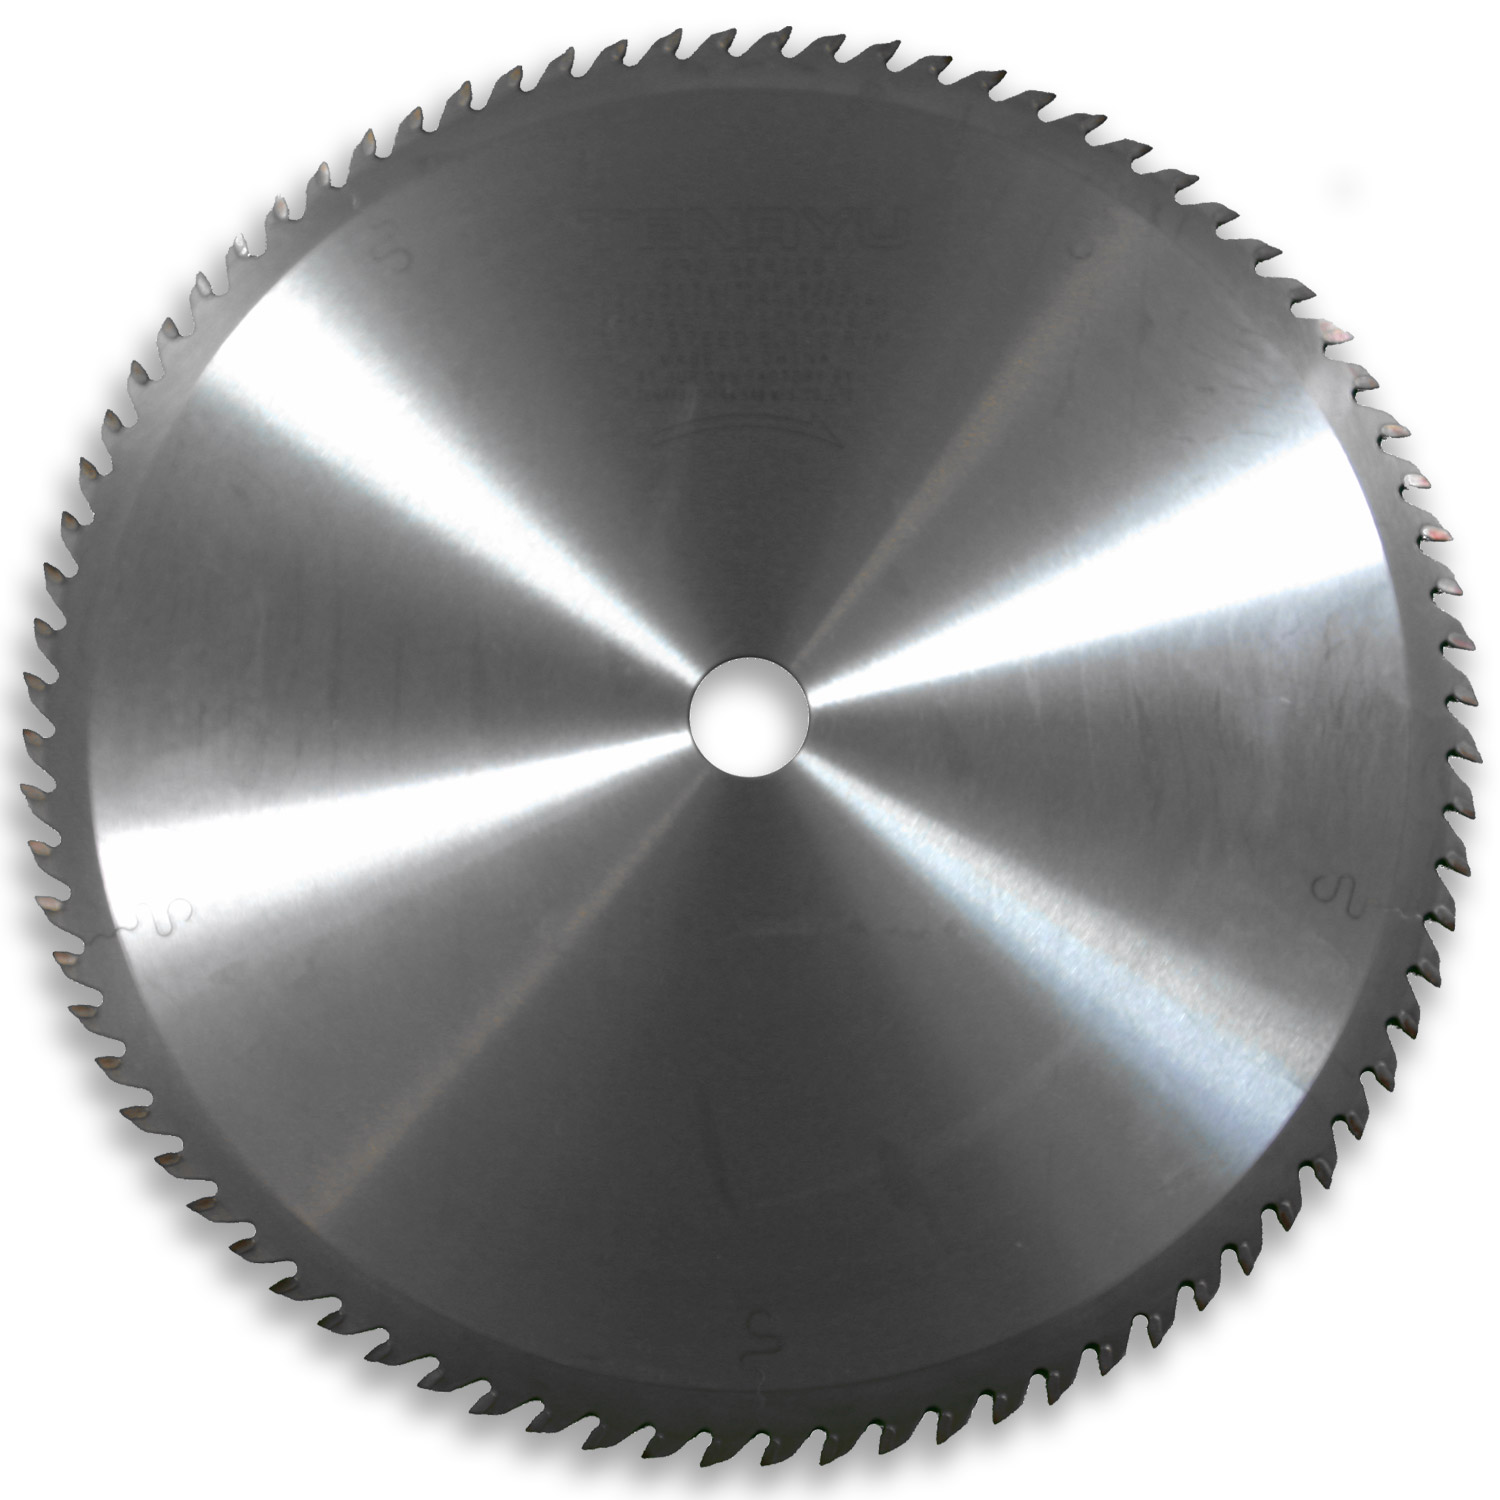 Image result for Circular Saw Blades.